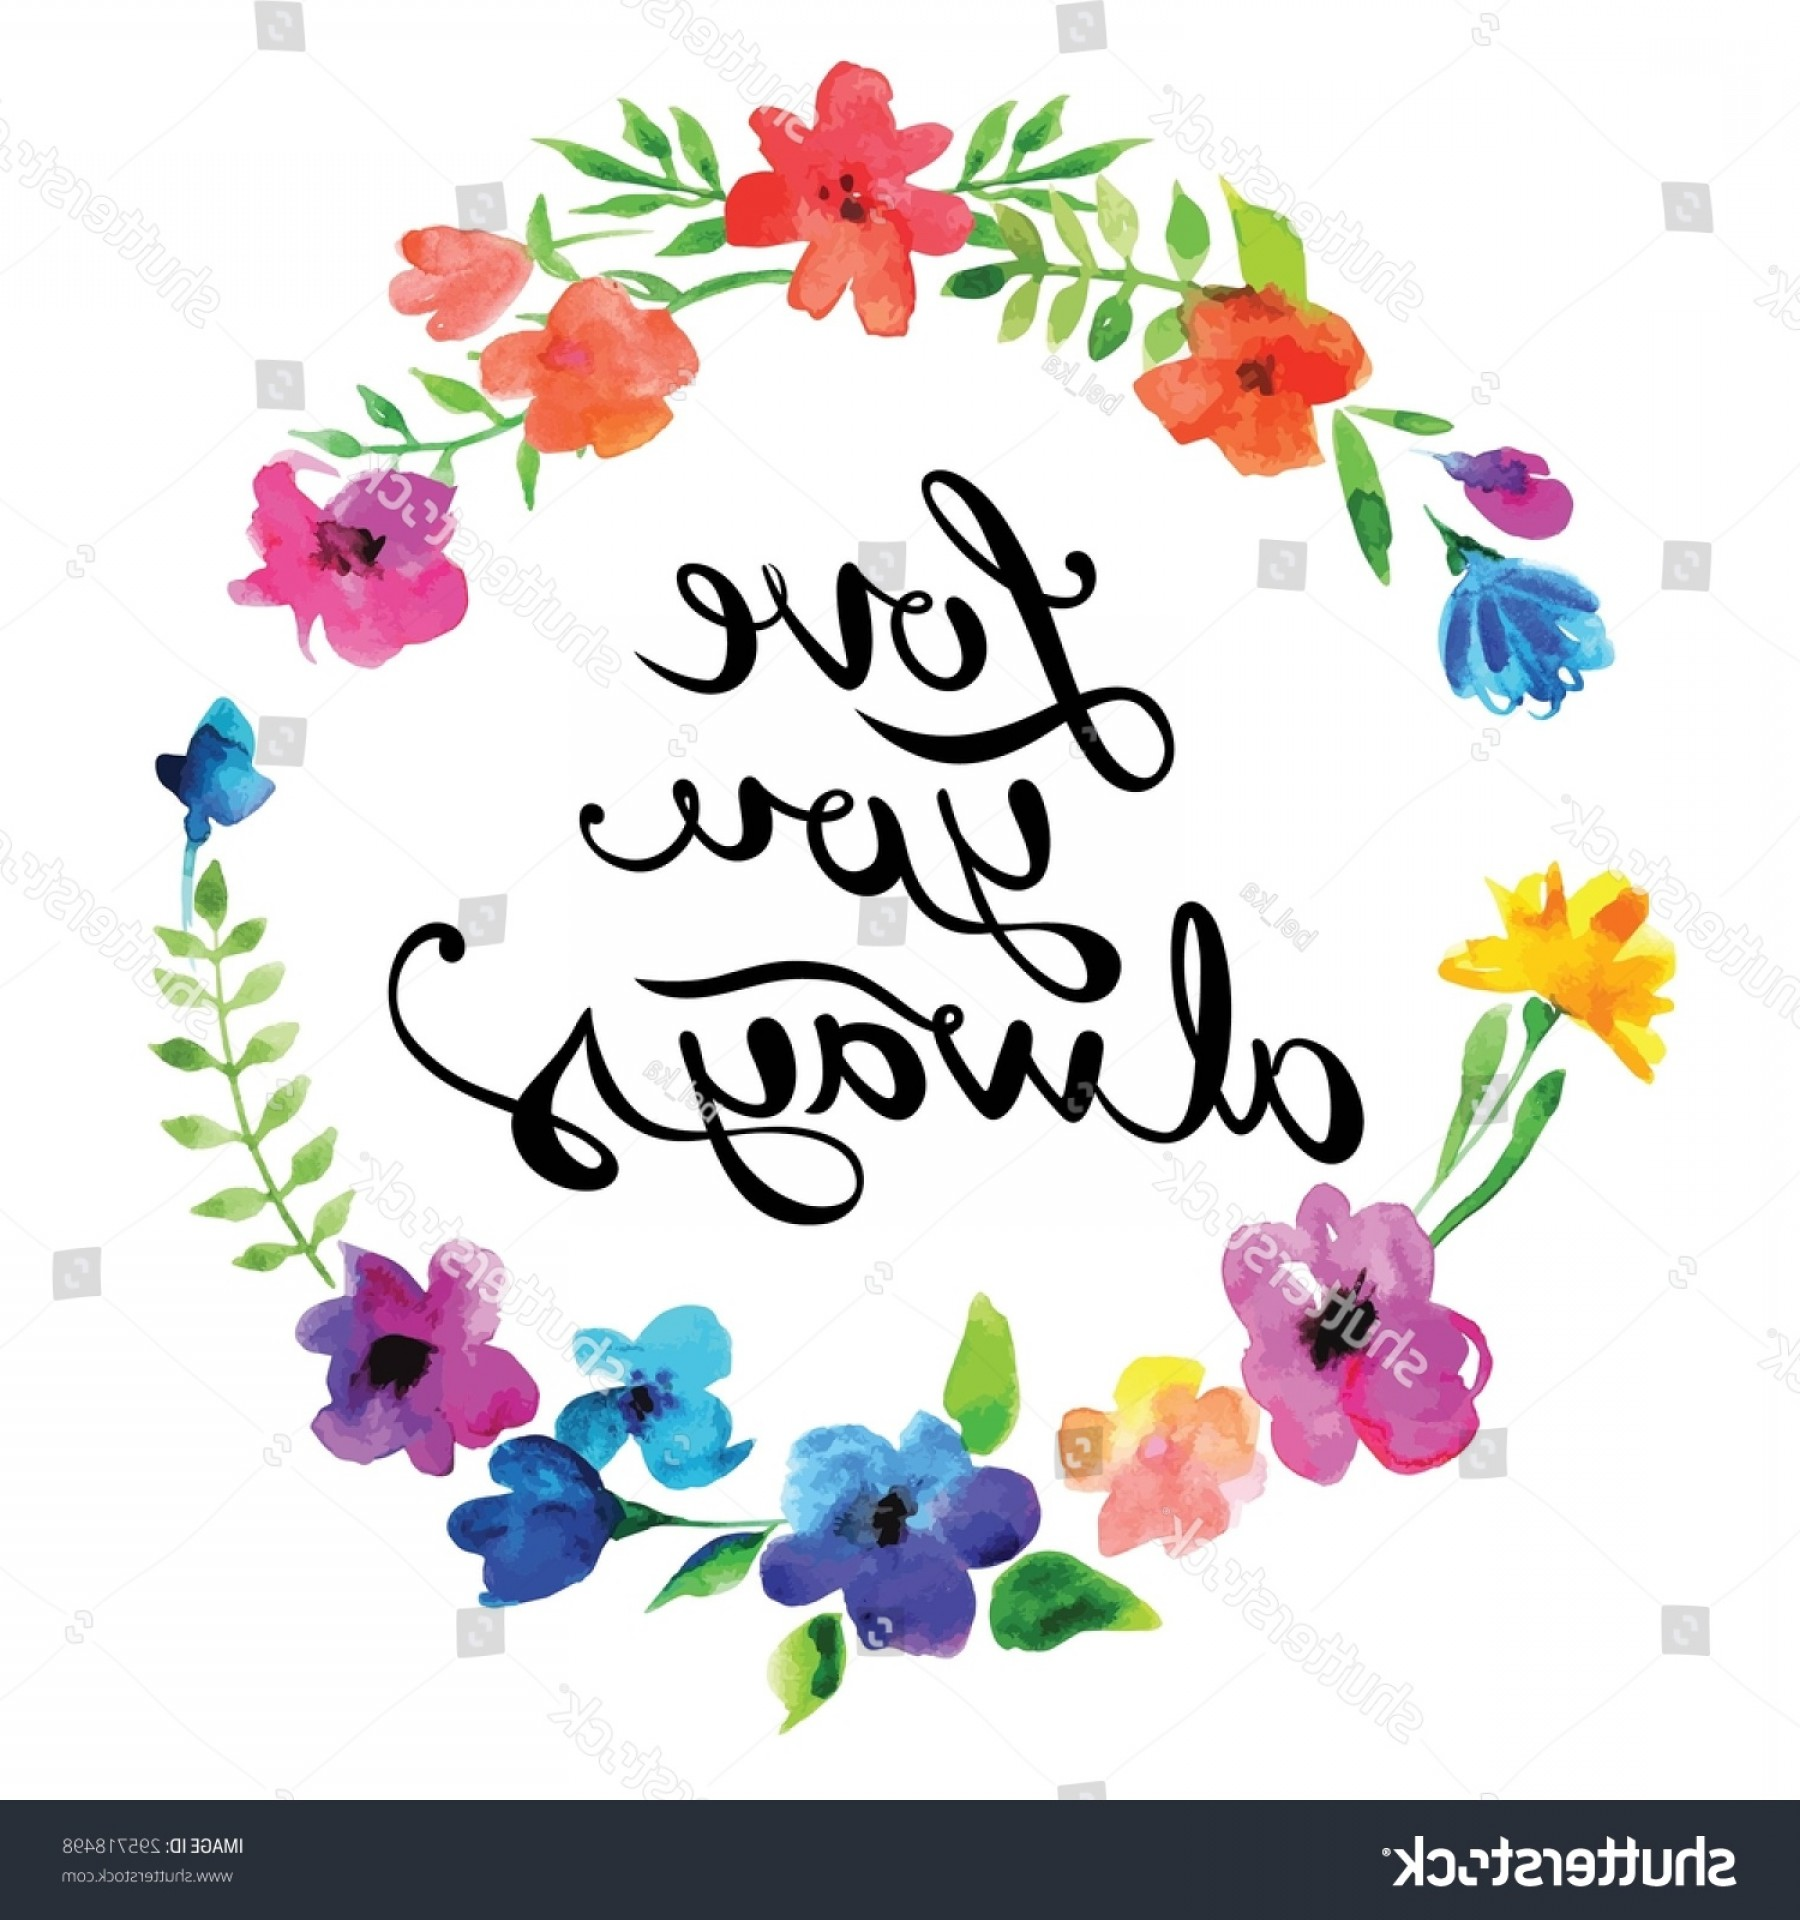 Floral Vector Calligraphy: Vector Watercolor Garland Flowers Calligraphy Text